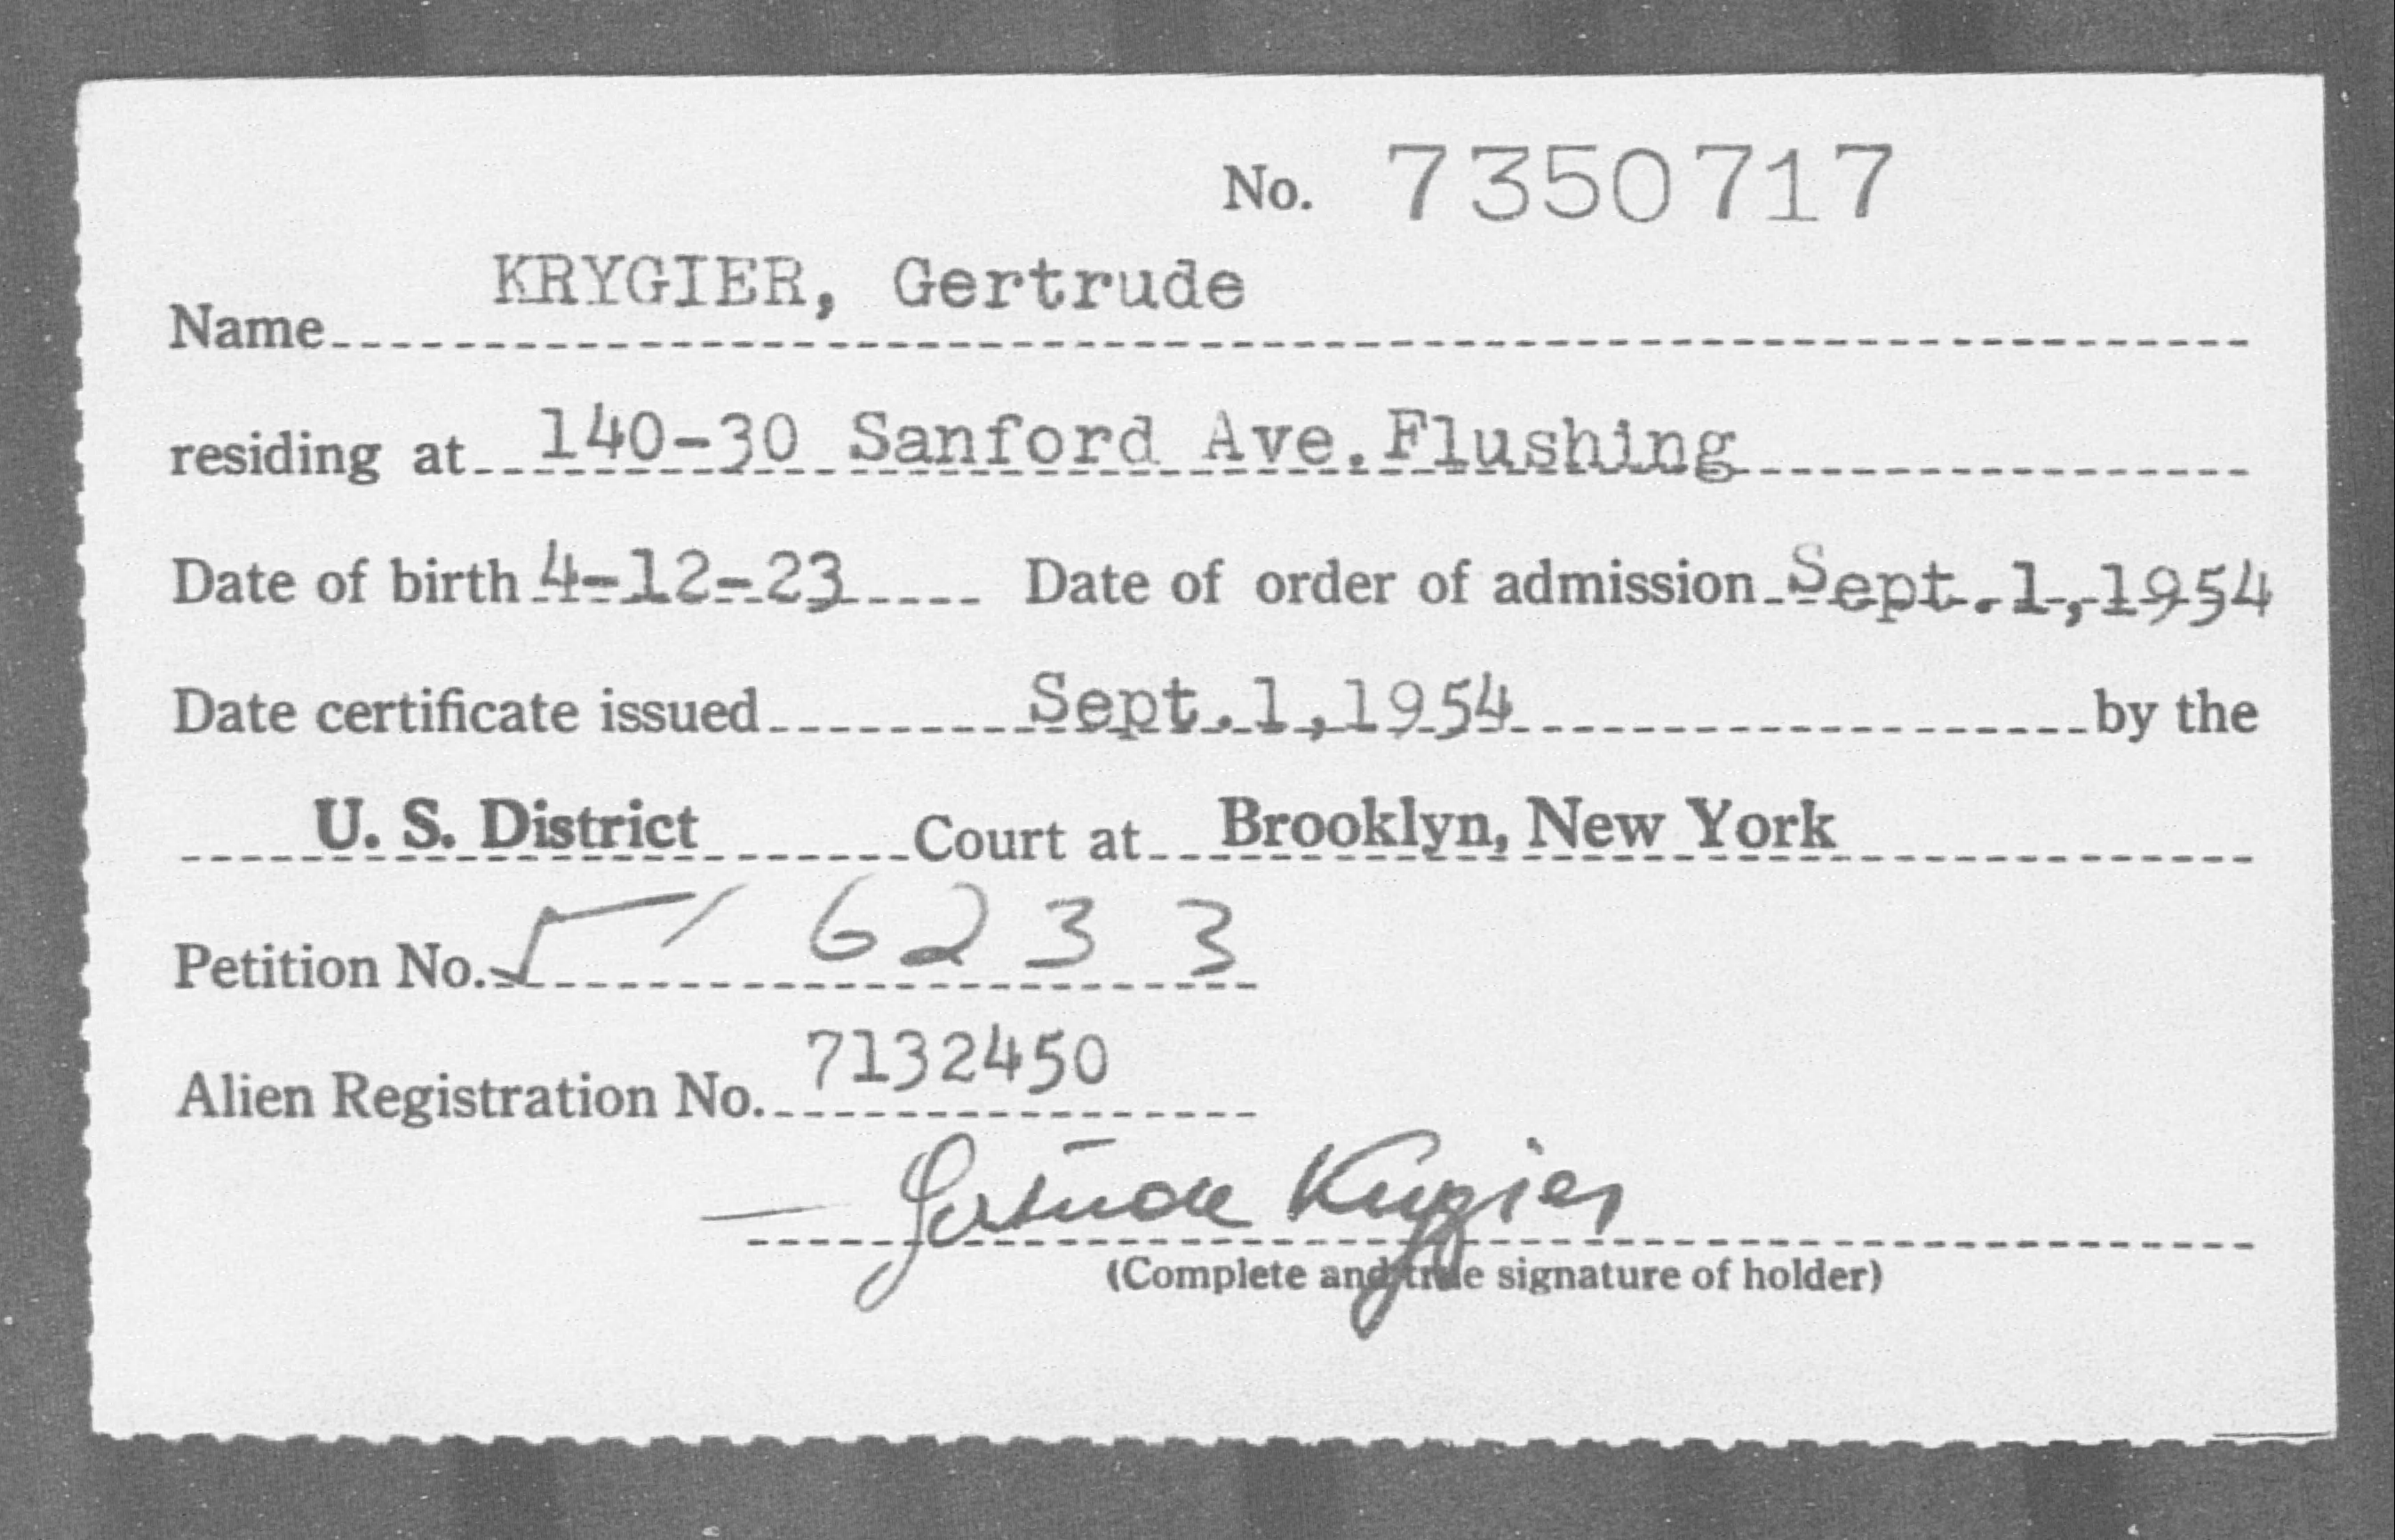 KRYGIER, Gertrude - Born: 1923, Naturalized: 1954